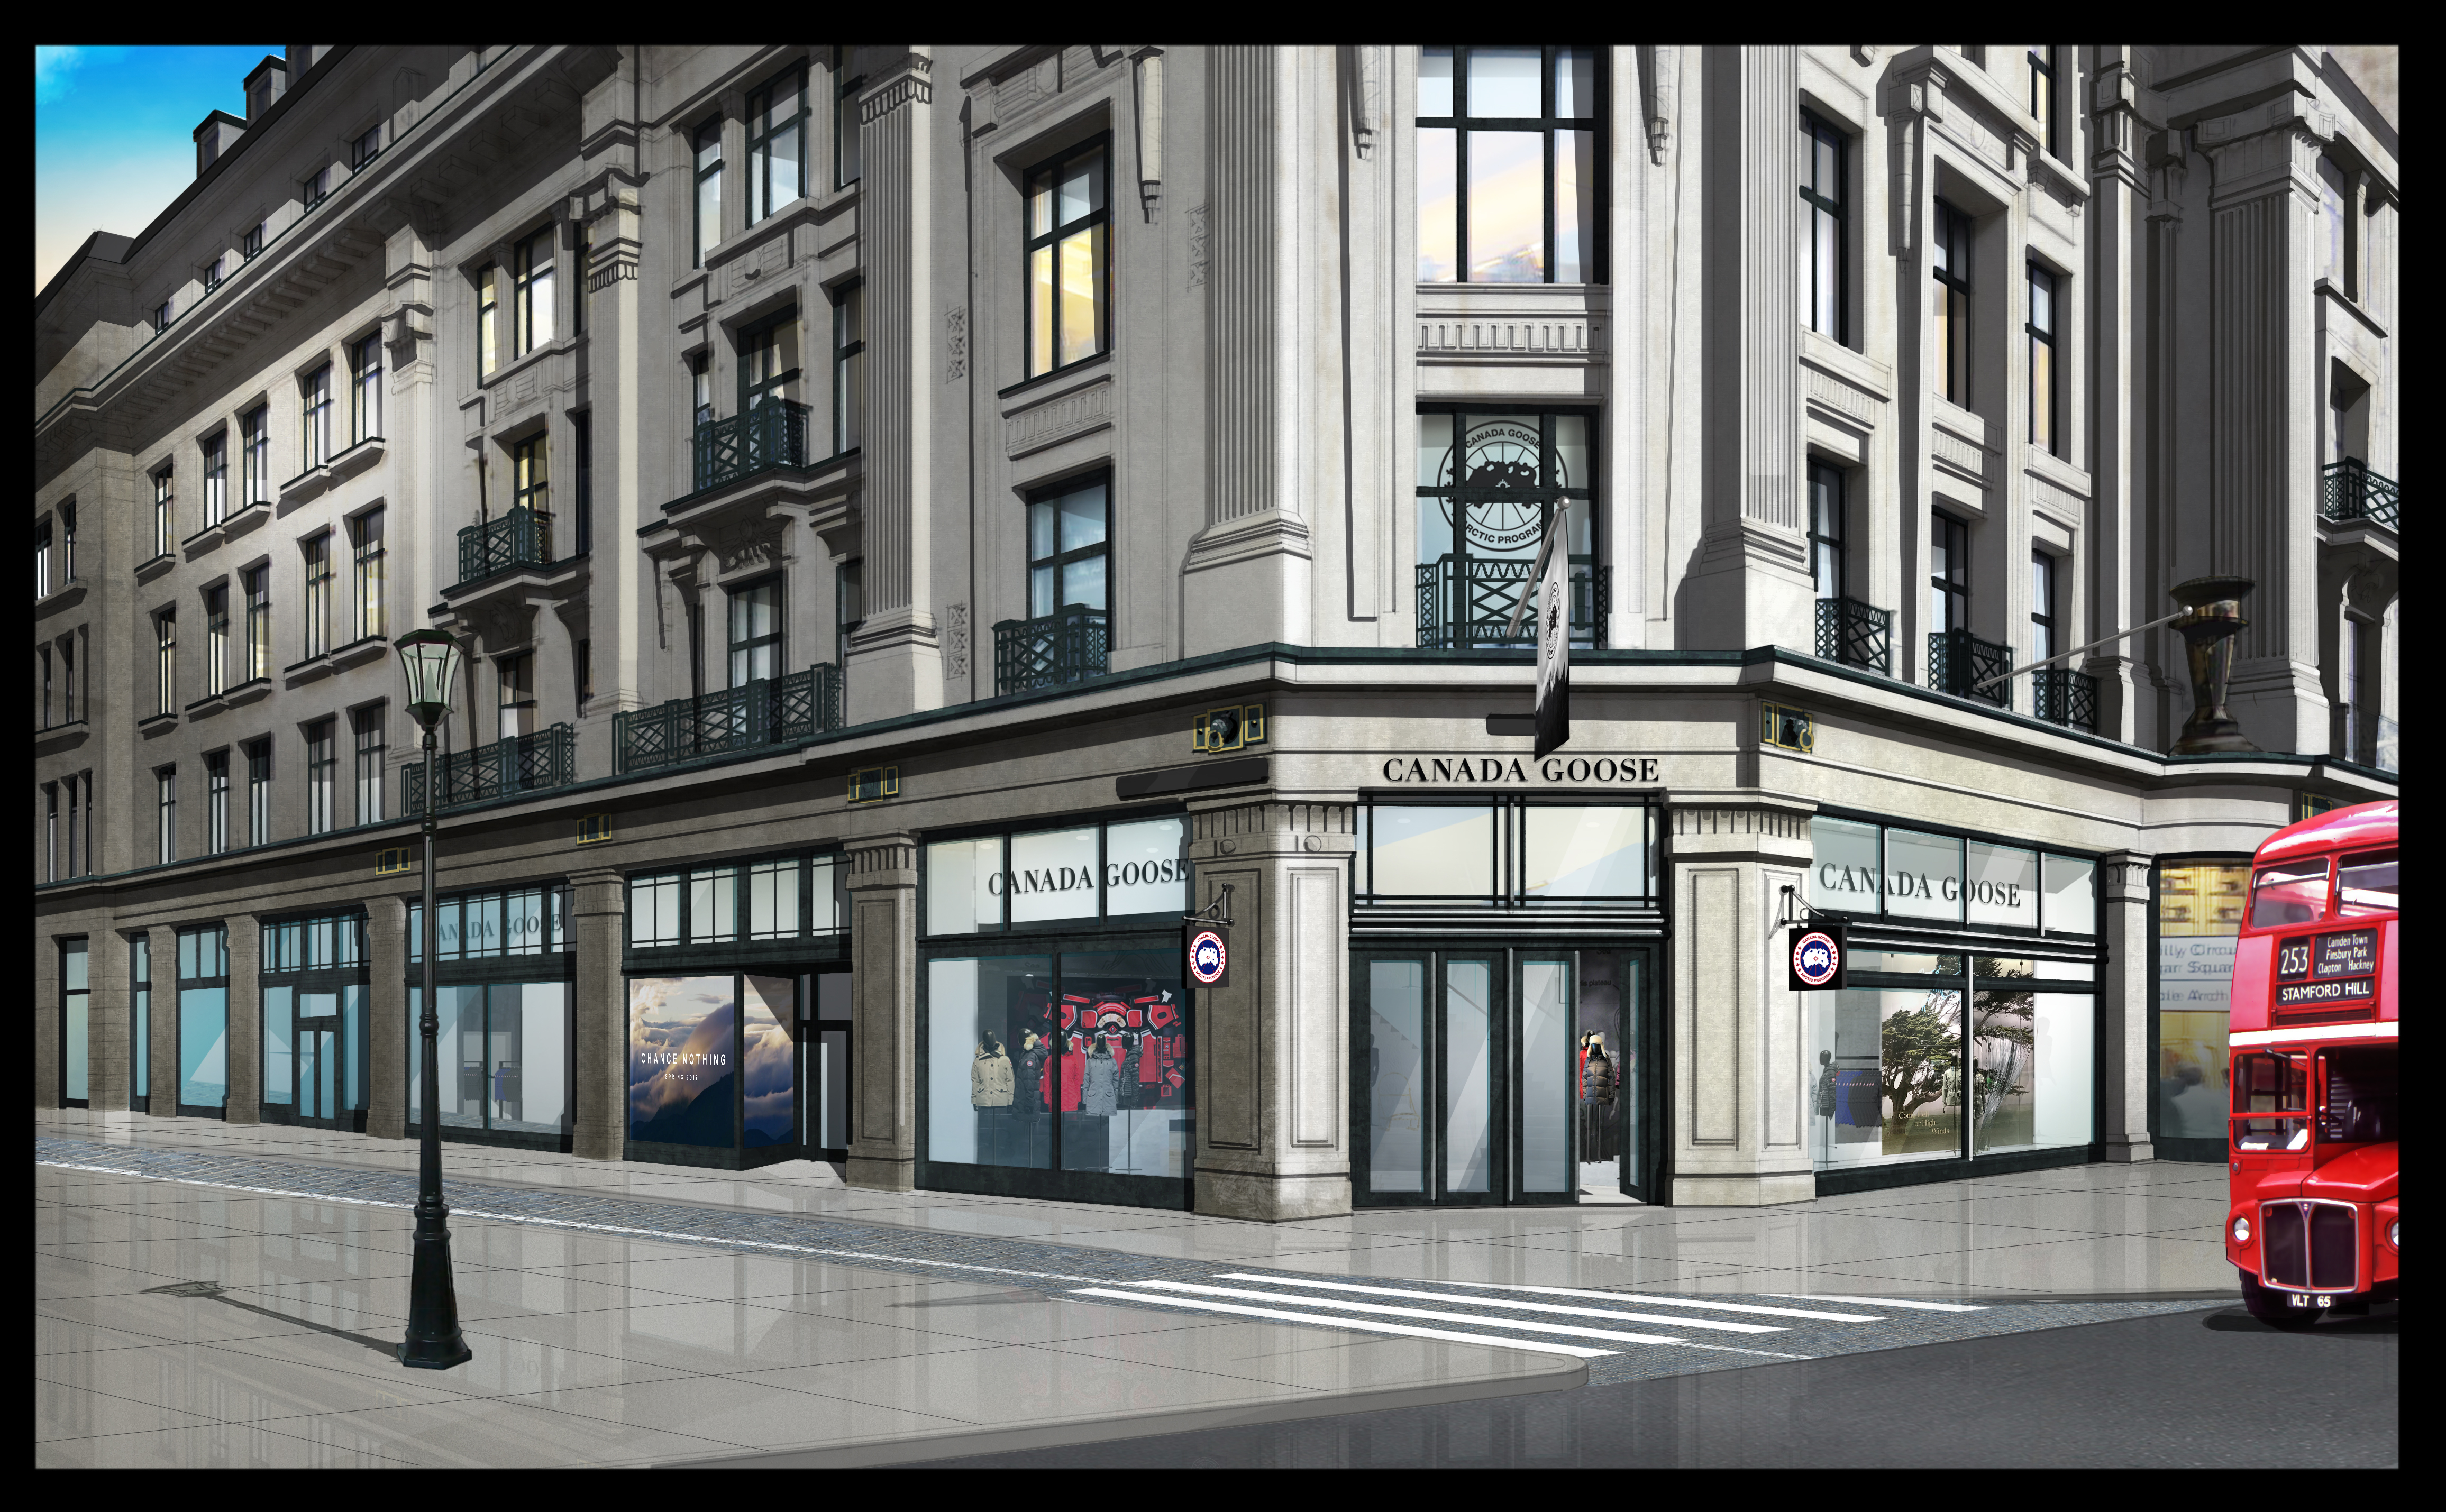 Canada Goose London Flagship Store Rendering (Photo: Business Wire)